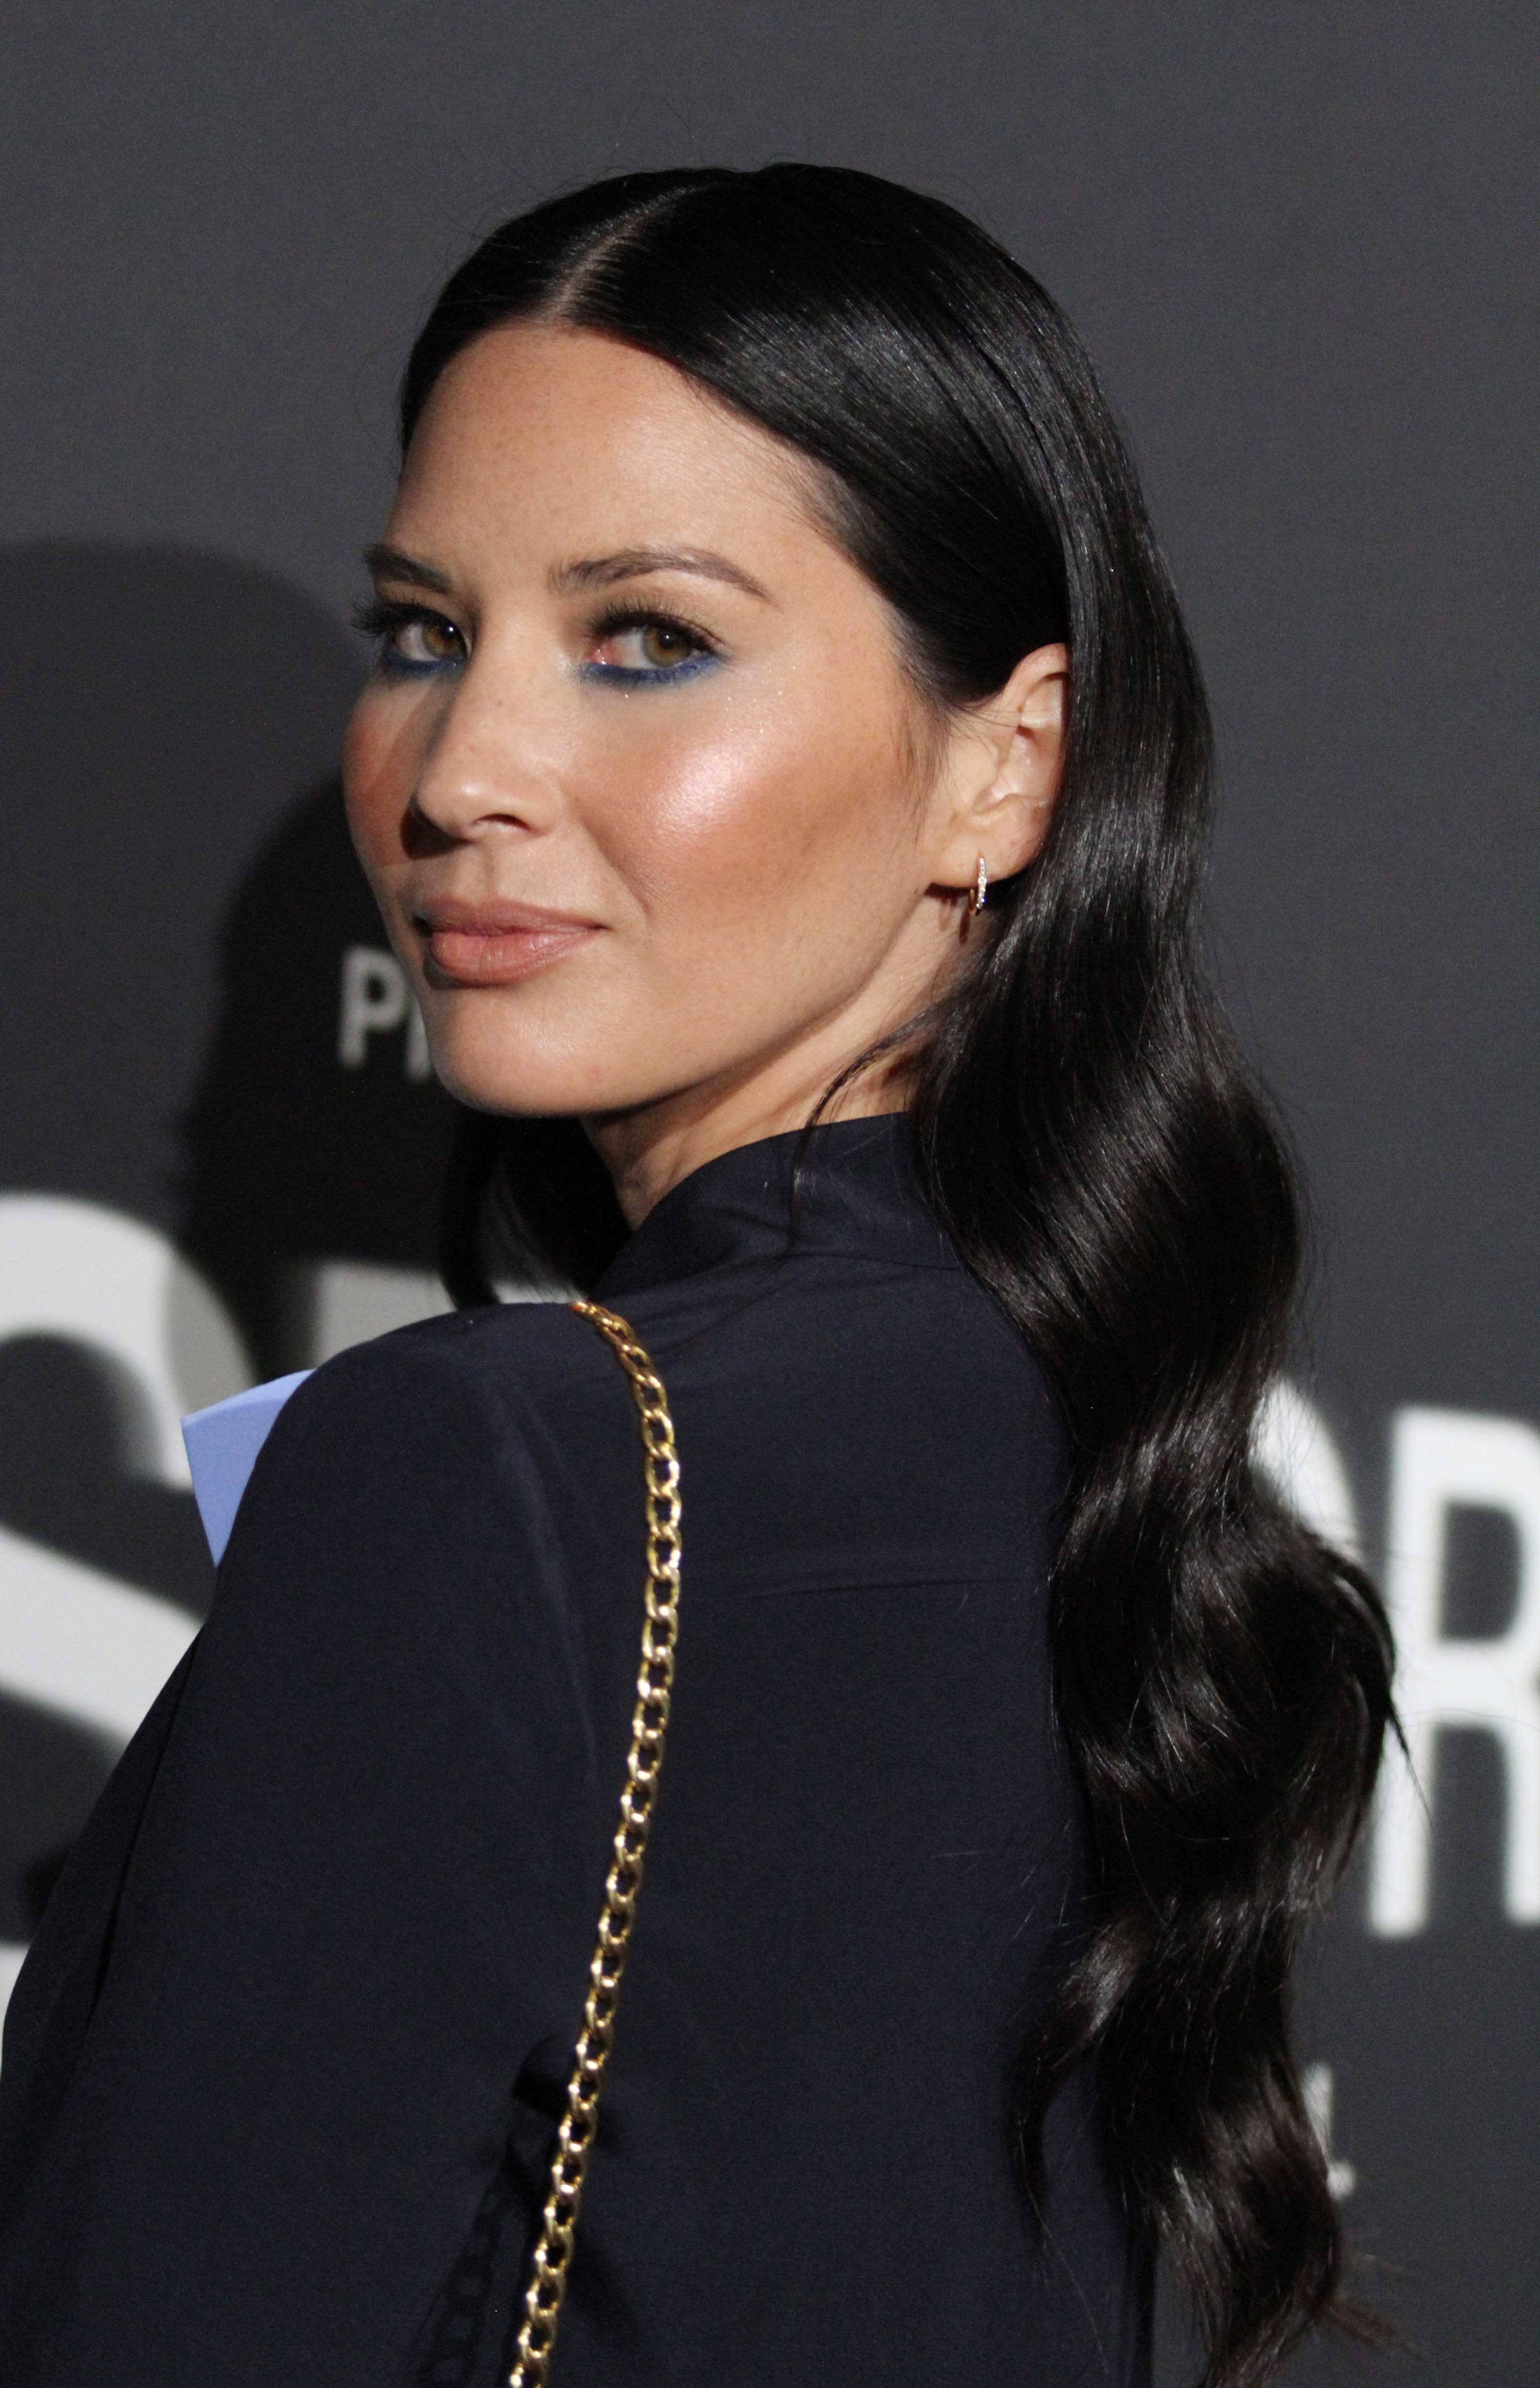 celebrity hair: All Things Hair - IMAGE - 2016 Olivia Munn long wavy brown hair shiny